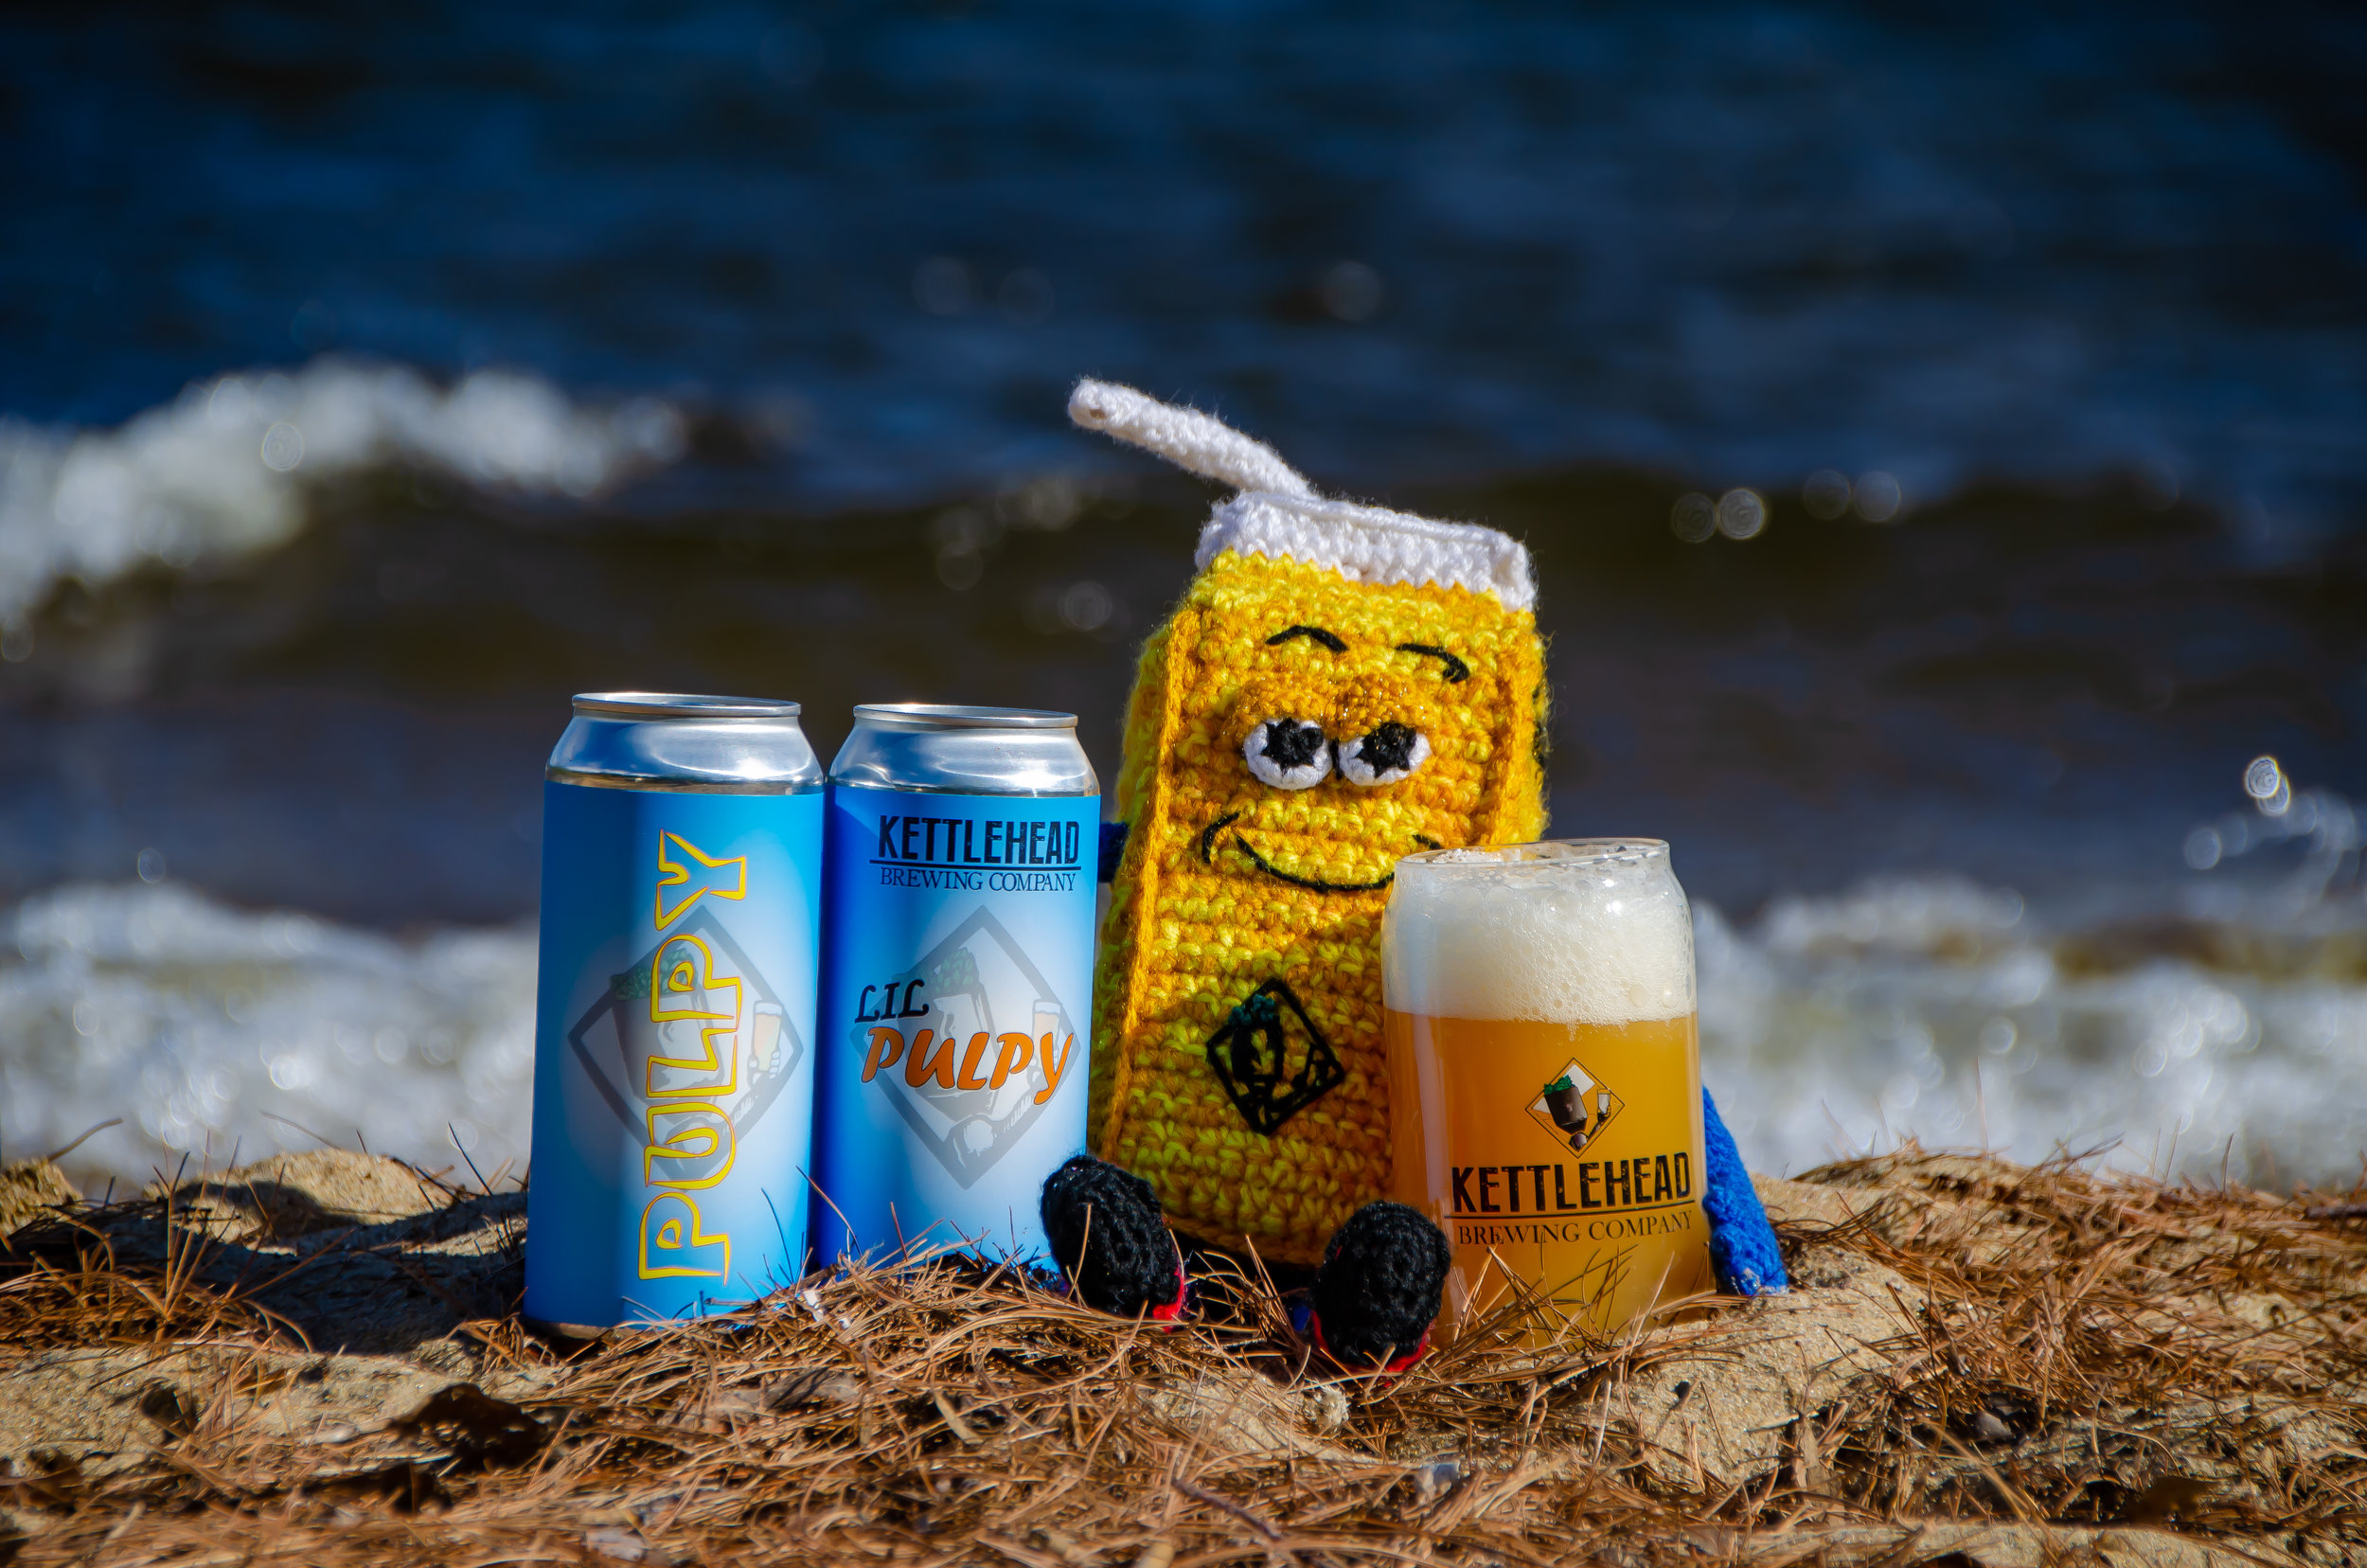 Lil' Pulpy Session IPA, 4.2% - They say dogs look like their owners. Well, Lil' Pulpy doesn't look like his owner, but he does taste like him. Light, crisp, juicy and sessionable